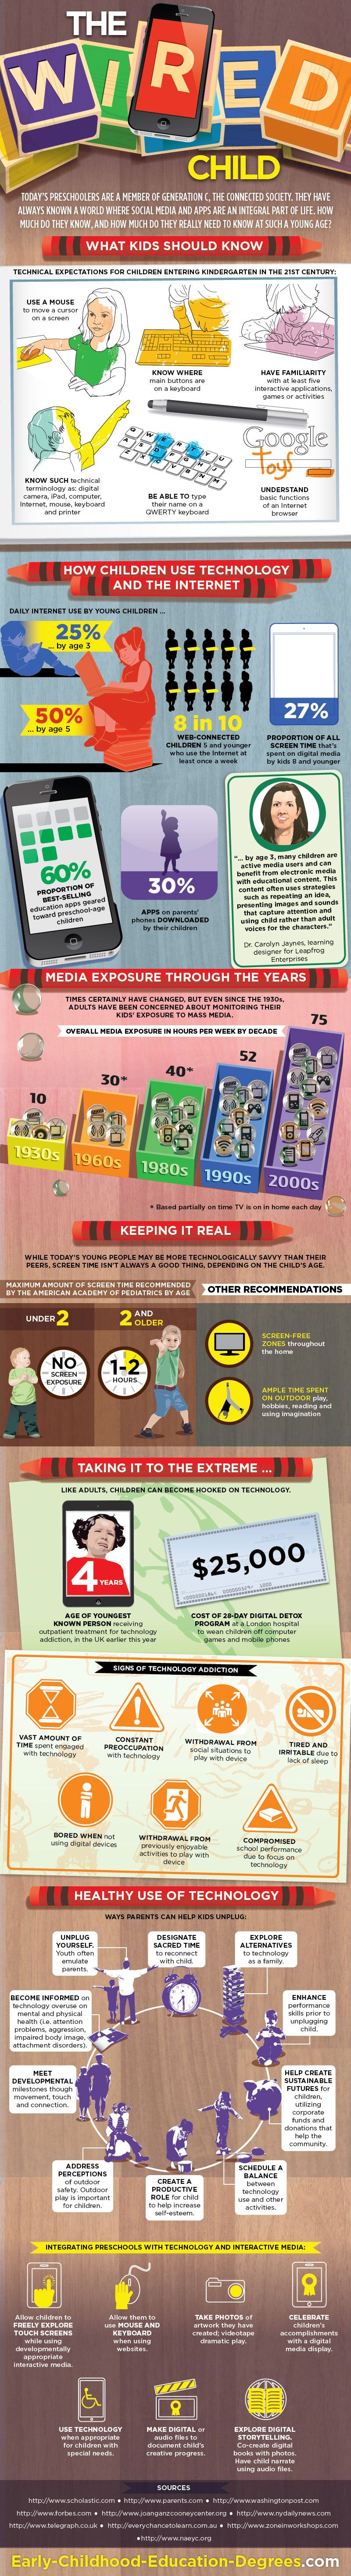 Activity Tailor: The Wired Child=infographic from Early Childhood Education Degrees. Pinned by SOS Inc. Resources. Follow all our boards at pinterest.com/sostherapy for therapy resources.